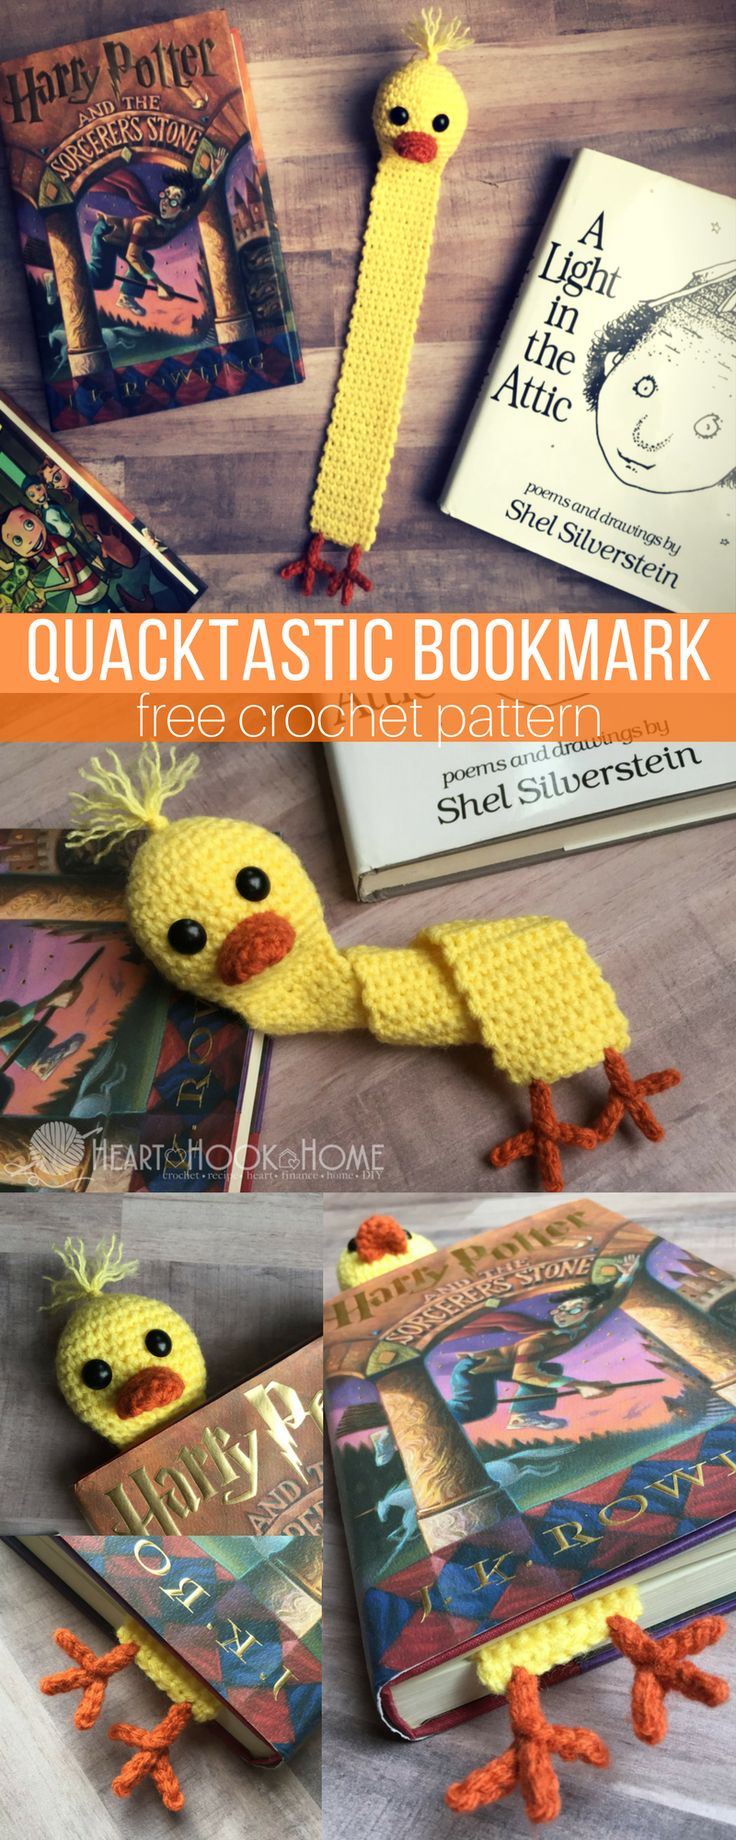 Quacktastic Duck Bookmark By Ashlea - Free Crochet Pattern - (hearthookhome)